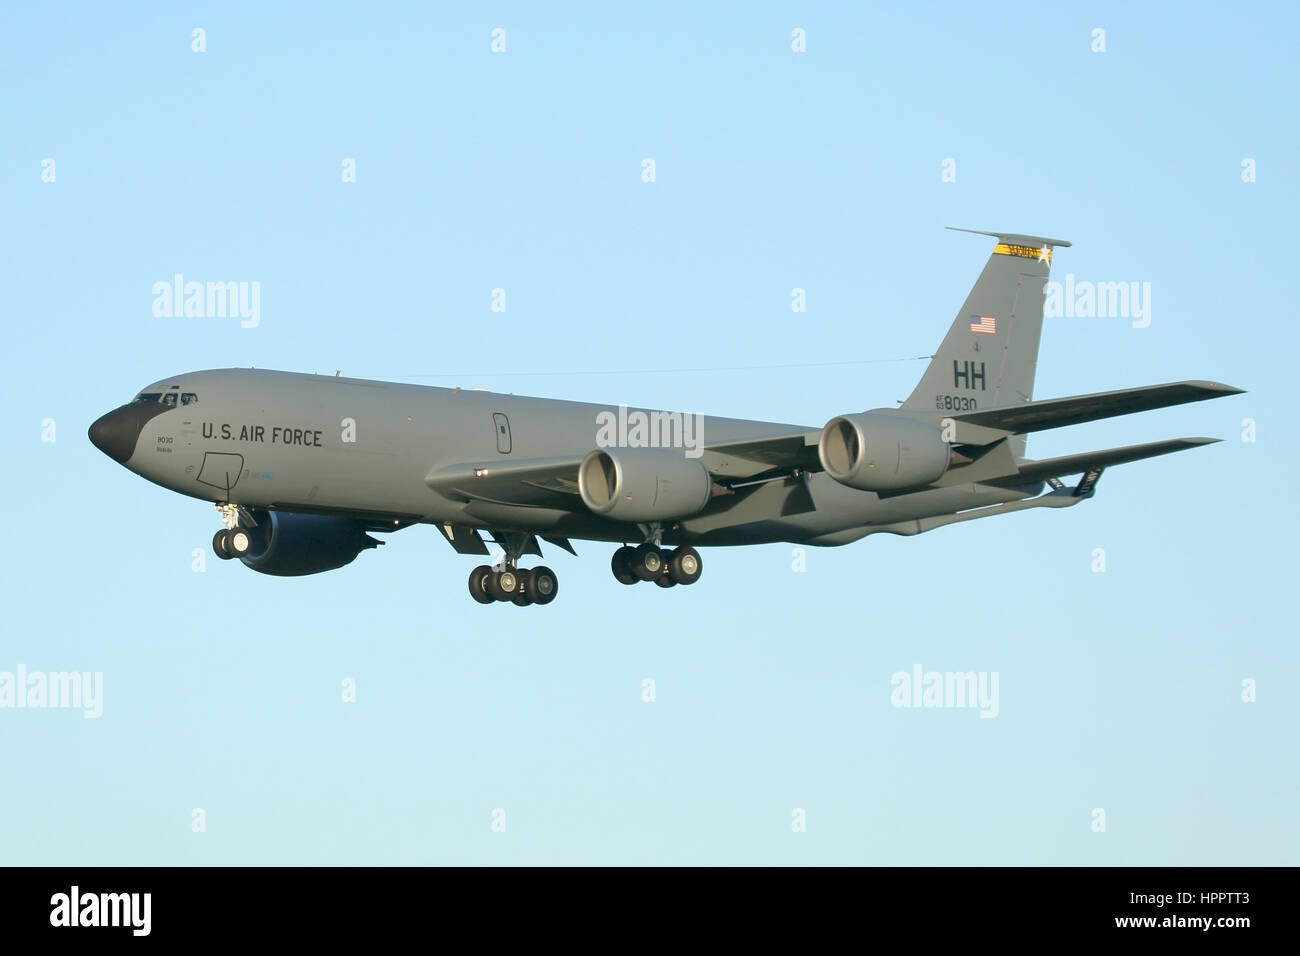 Rare appearance in the UK by a Hawaii Air National Guard KC-135R Stratotanker. Landing at RAF Mildenhall. - Stock Image